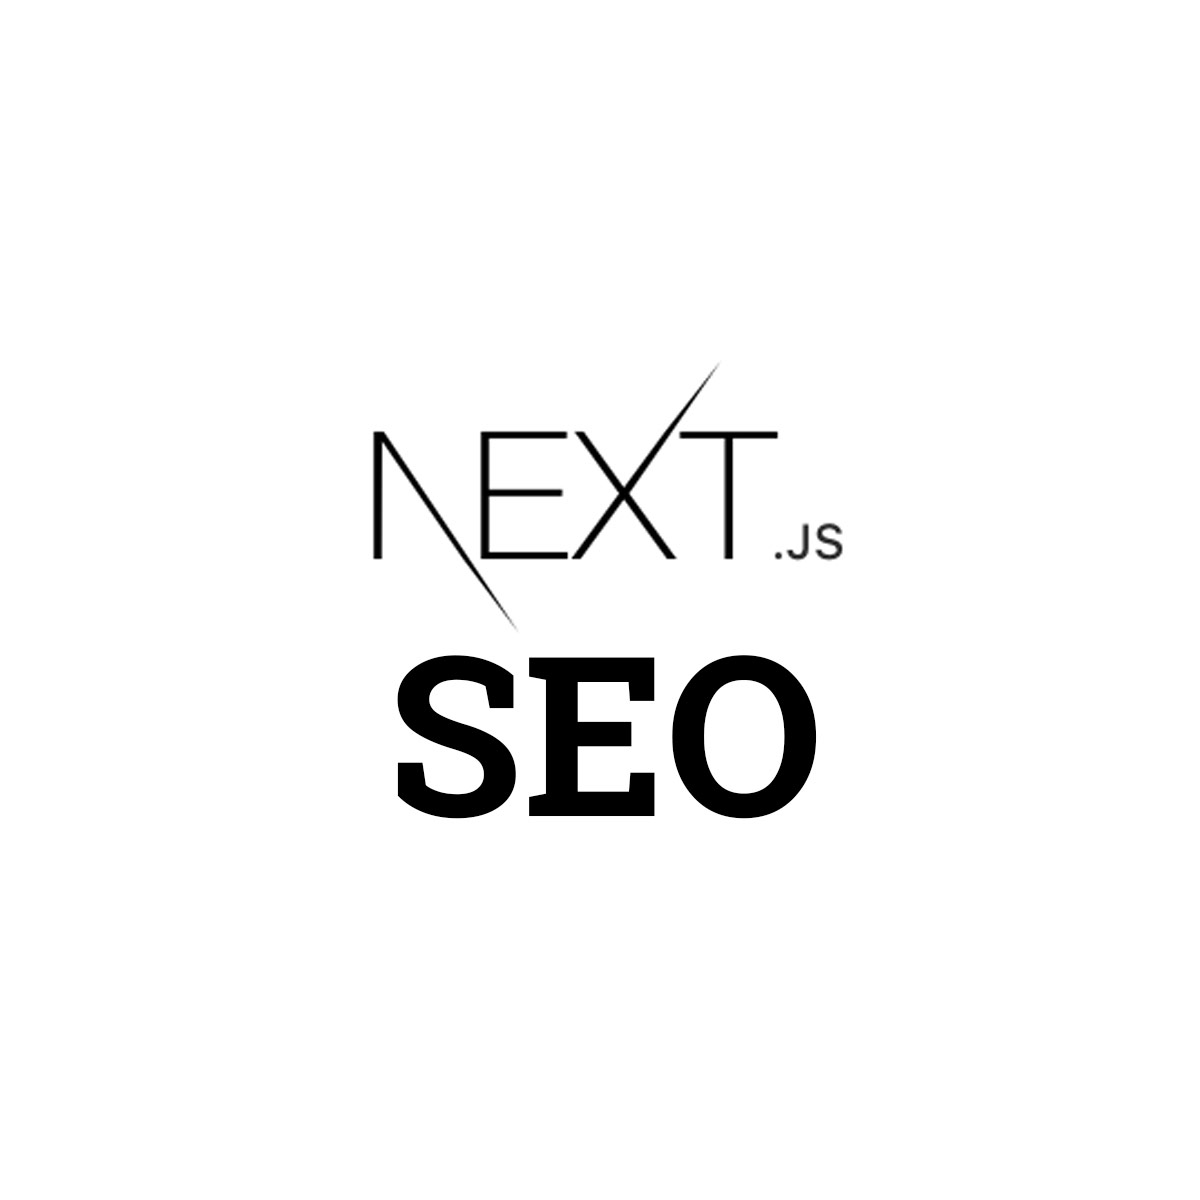 SEO in Next js with next-seo | Gary Meehan